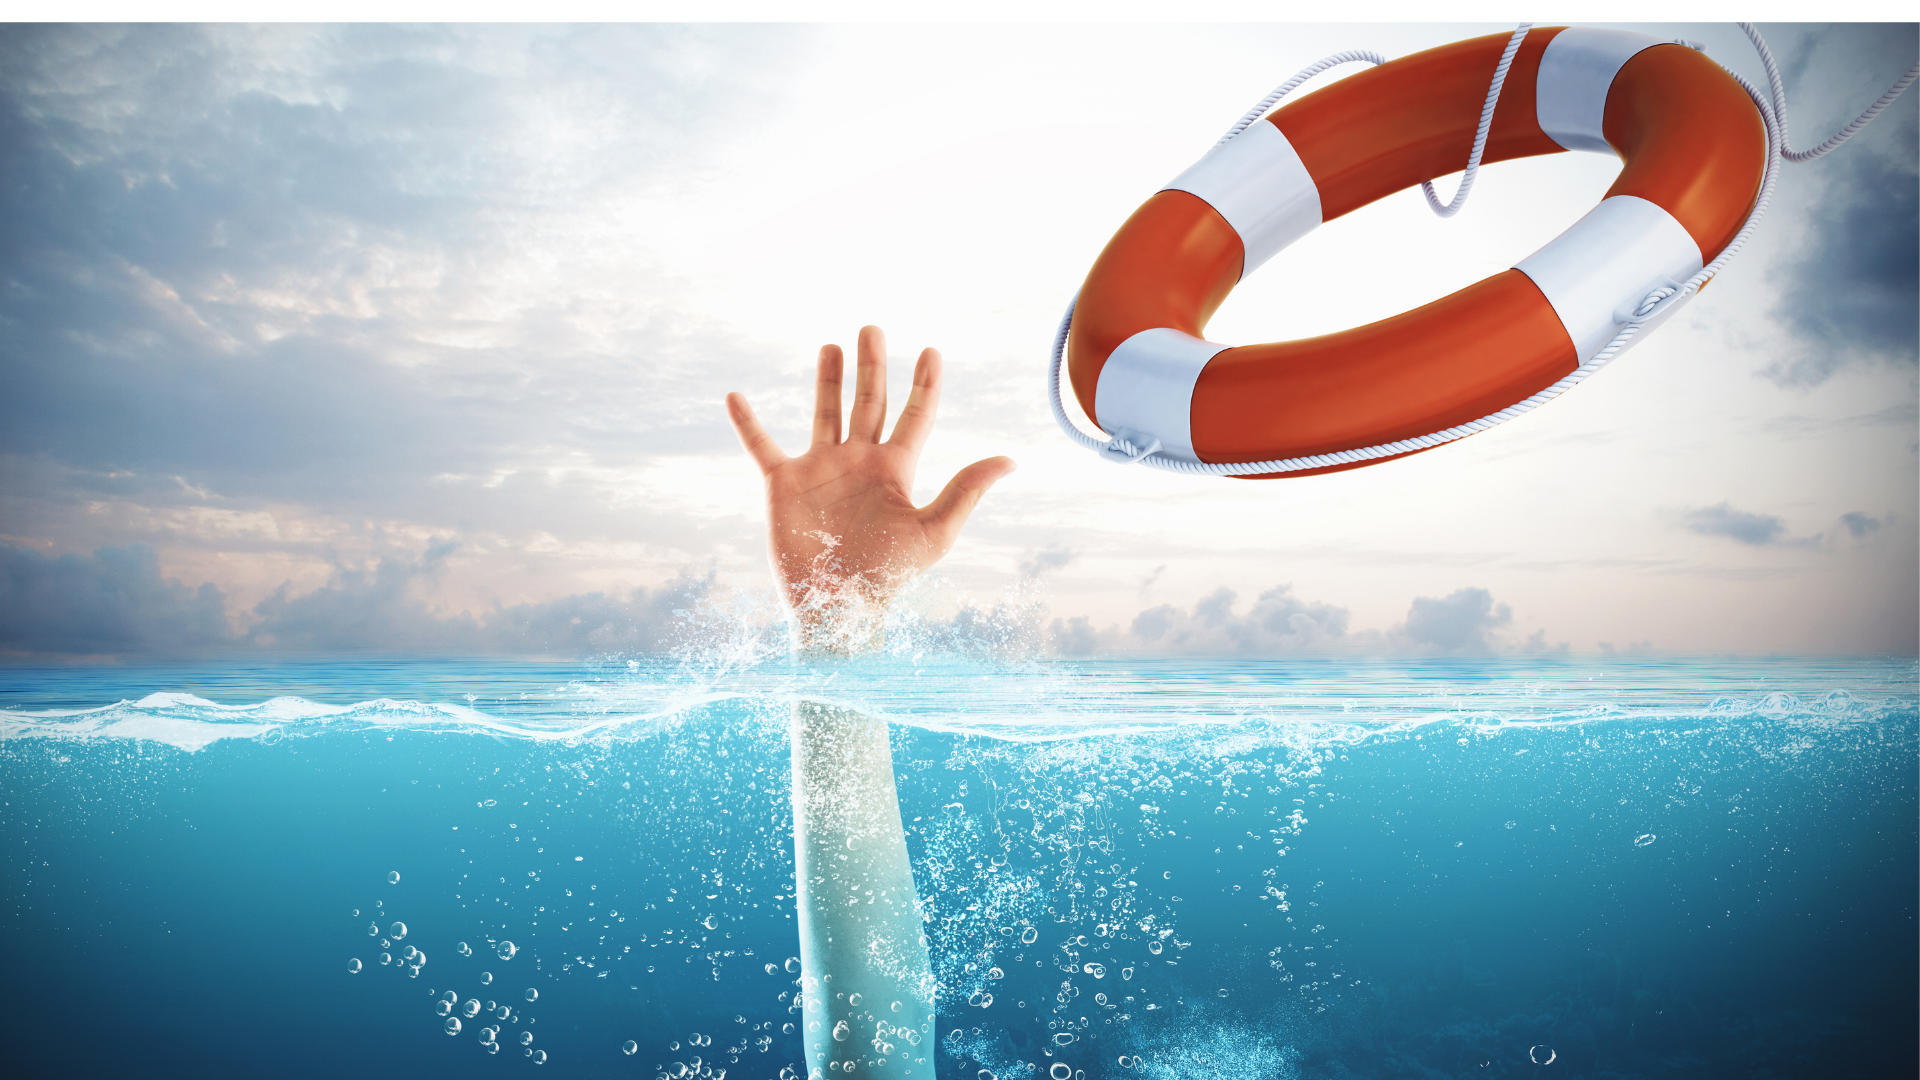 What to do when your business is drowning in unpaid invoices